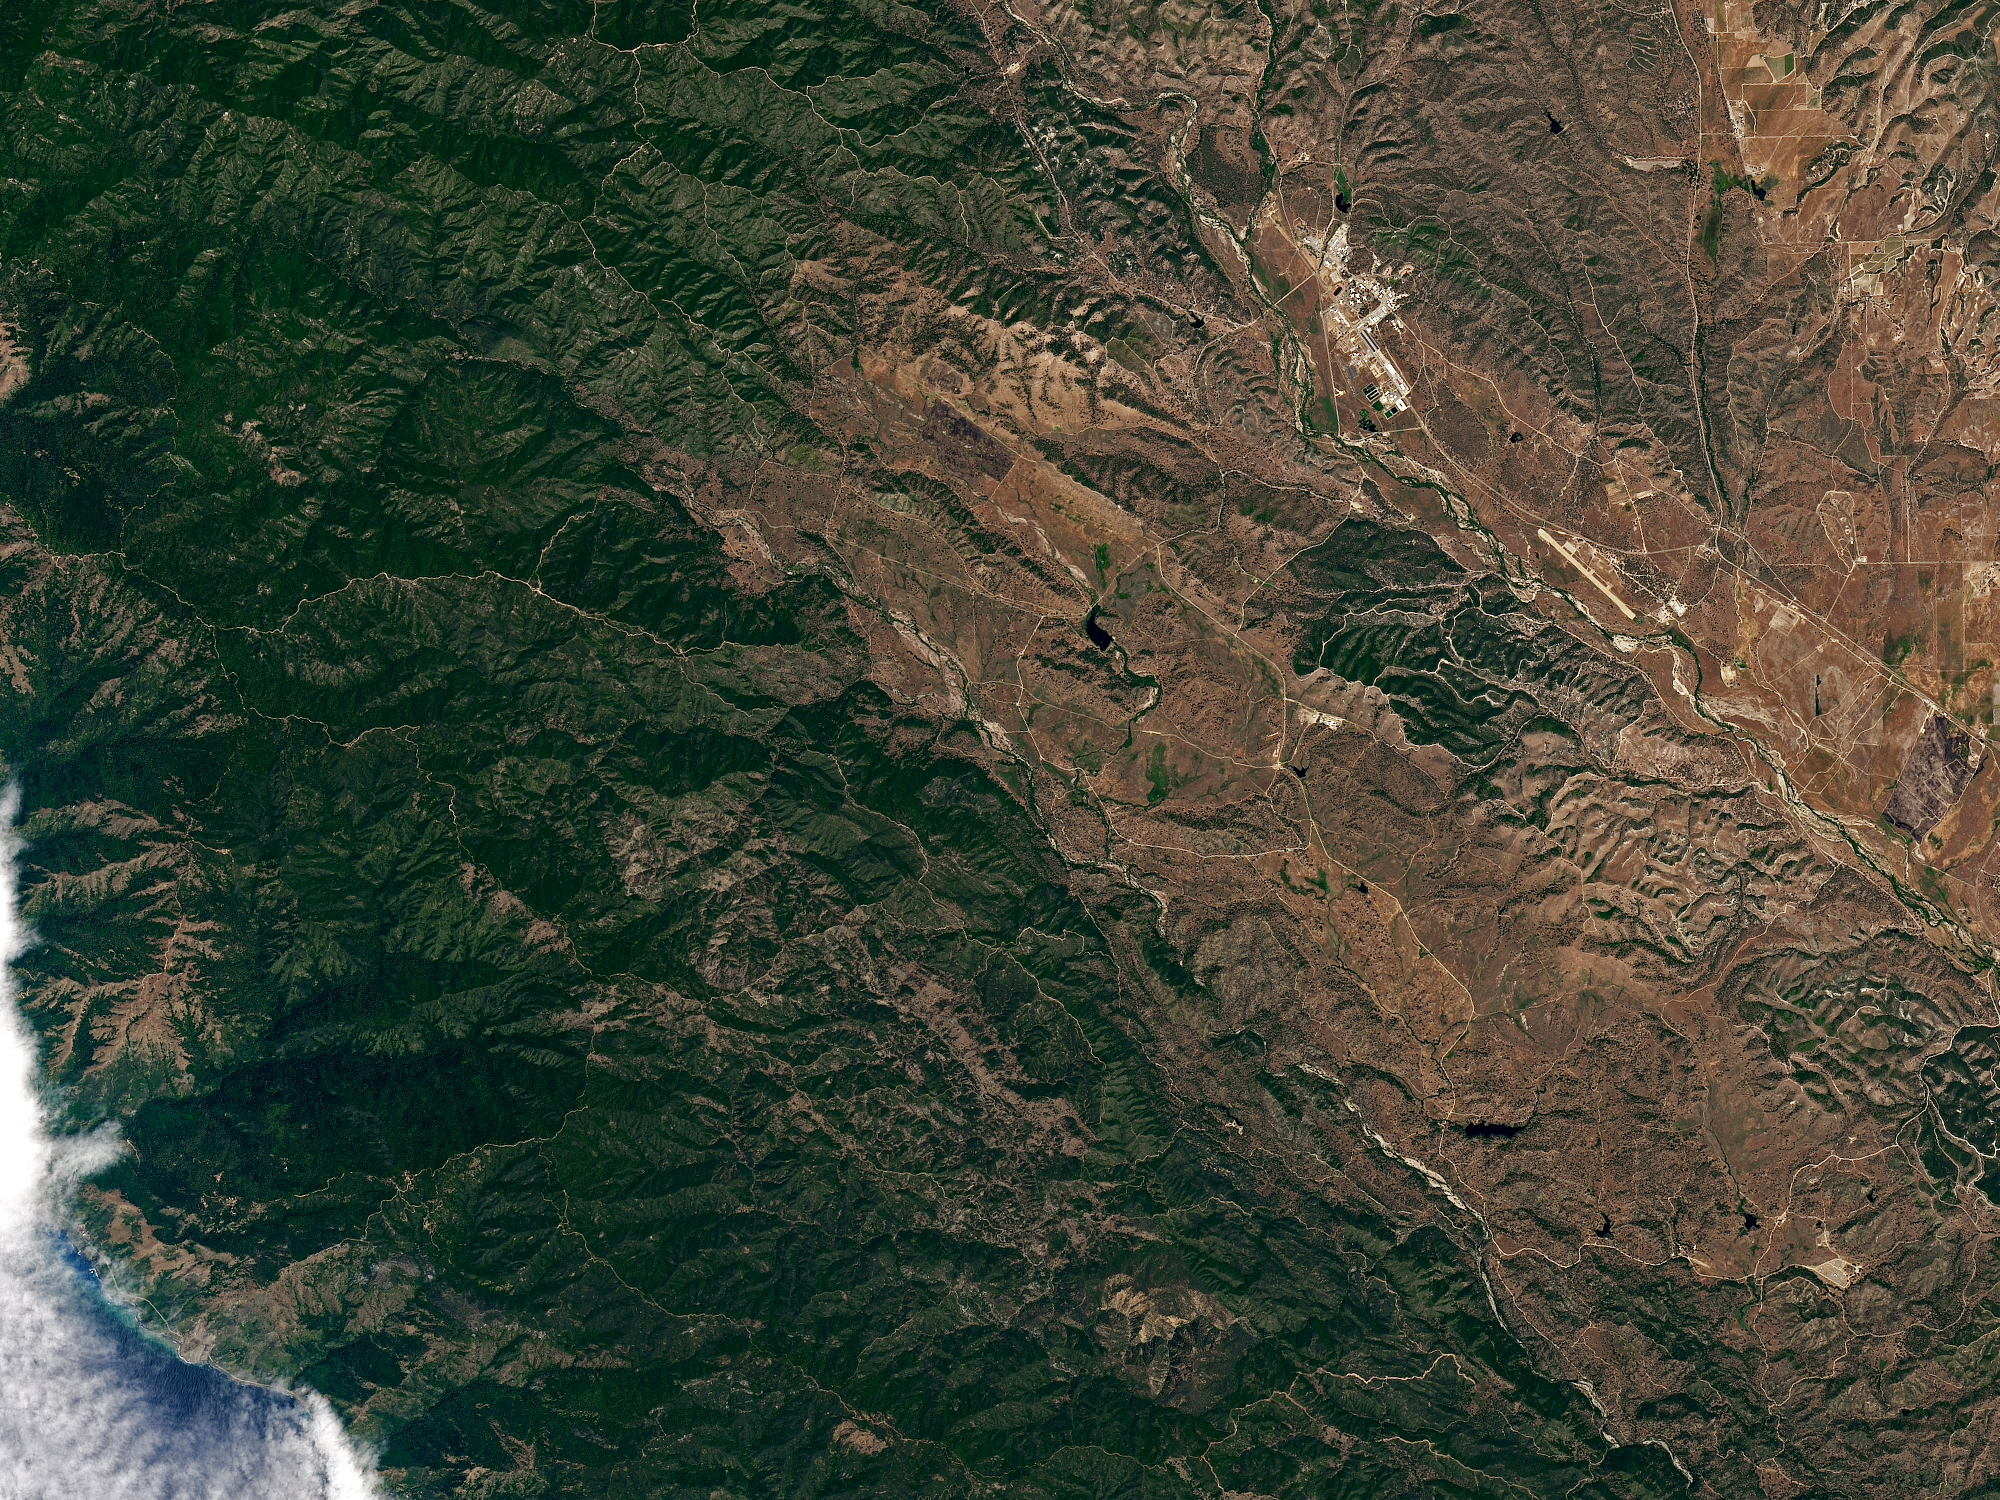 Landslide Buries Scenic California Highway - related image preview